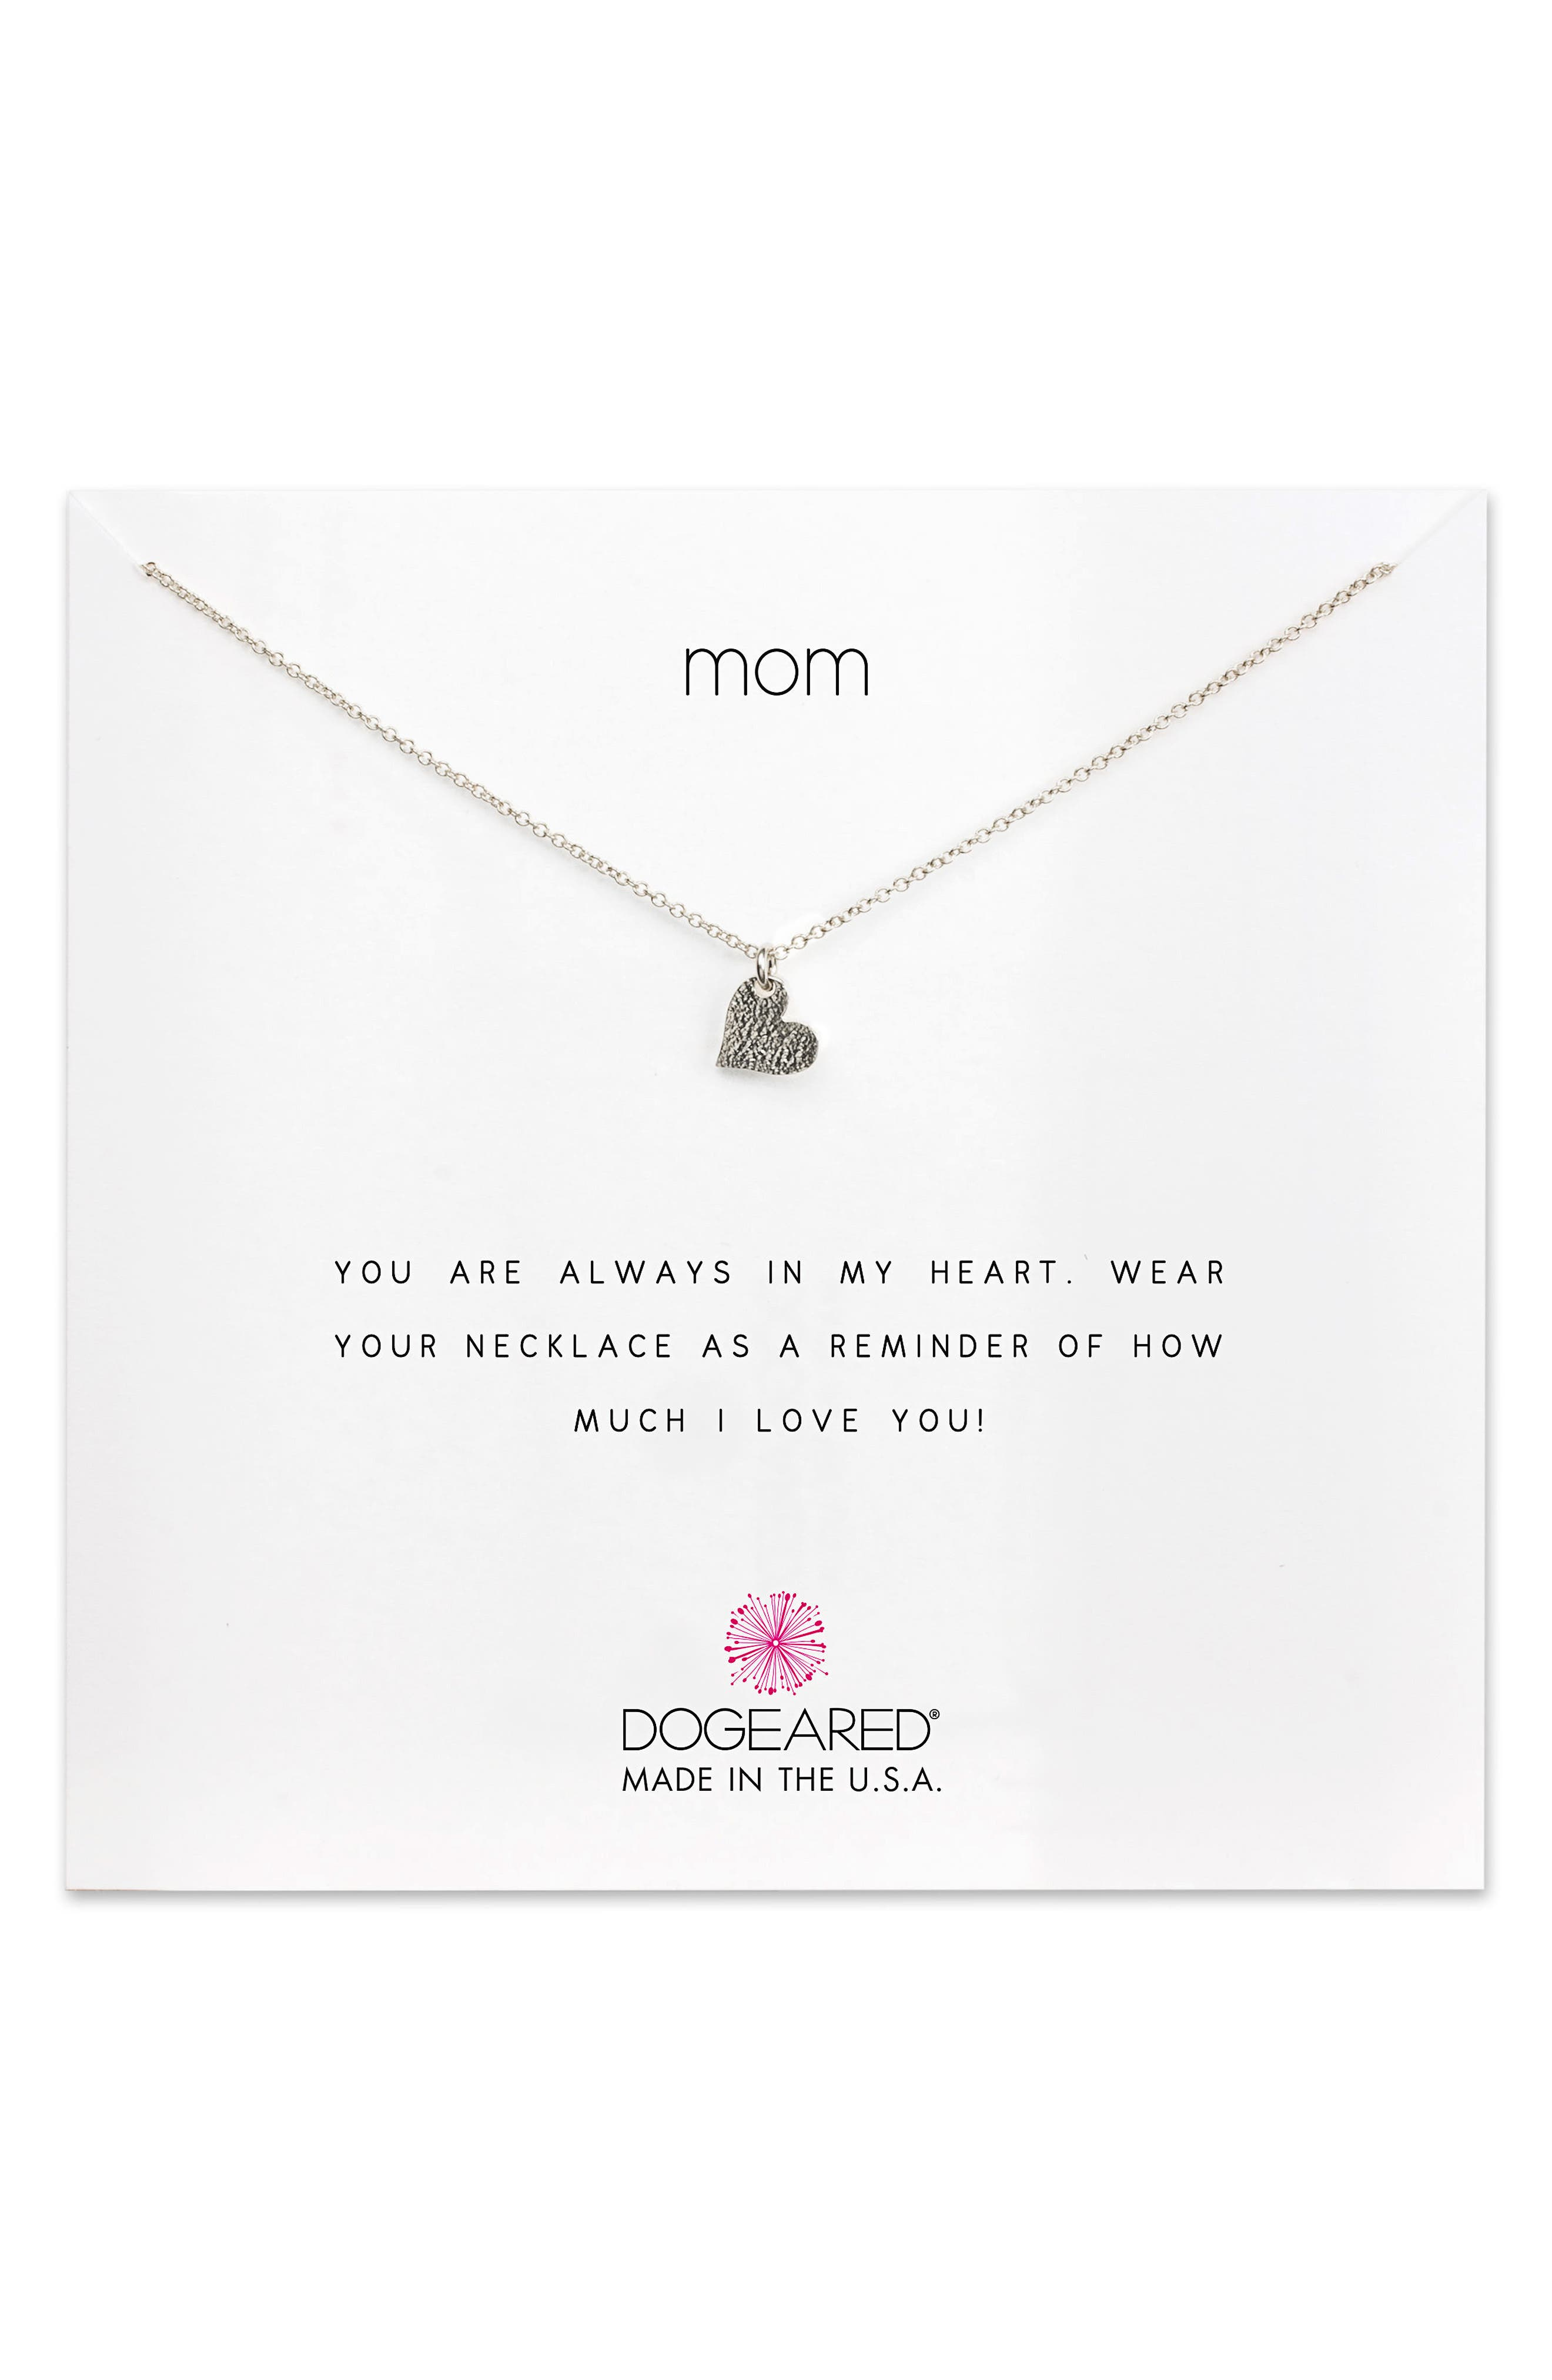 Alternate Image 1 Selected - Dogeared Mom Pendant Necklace